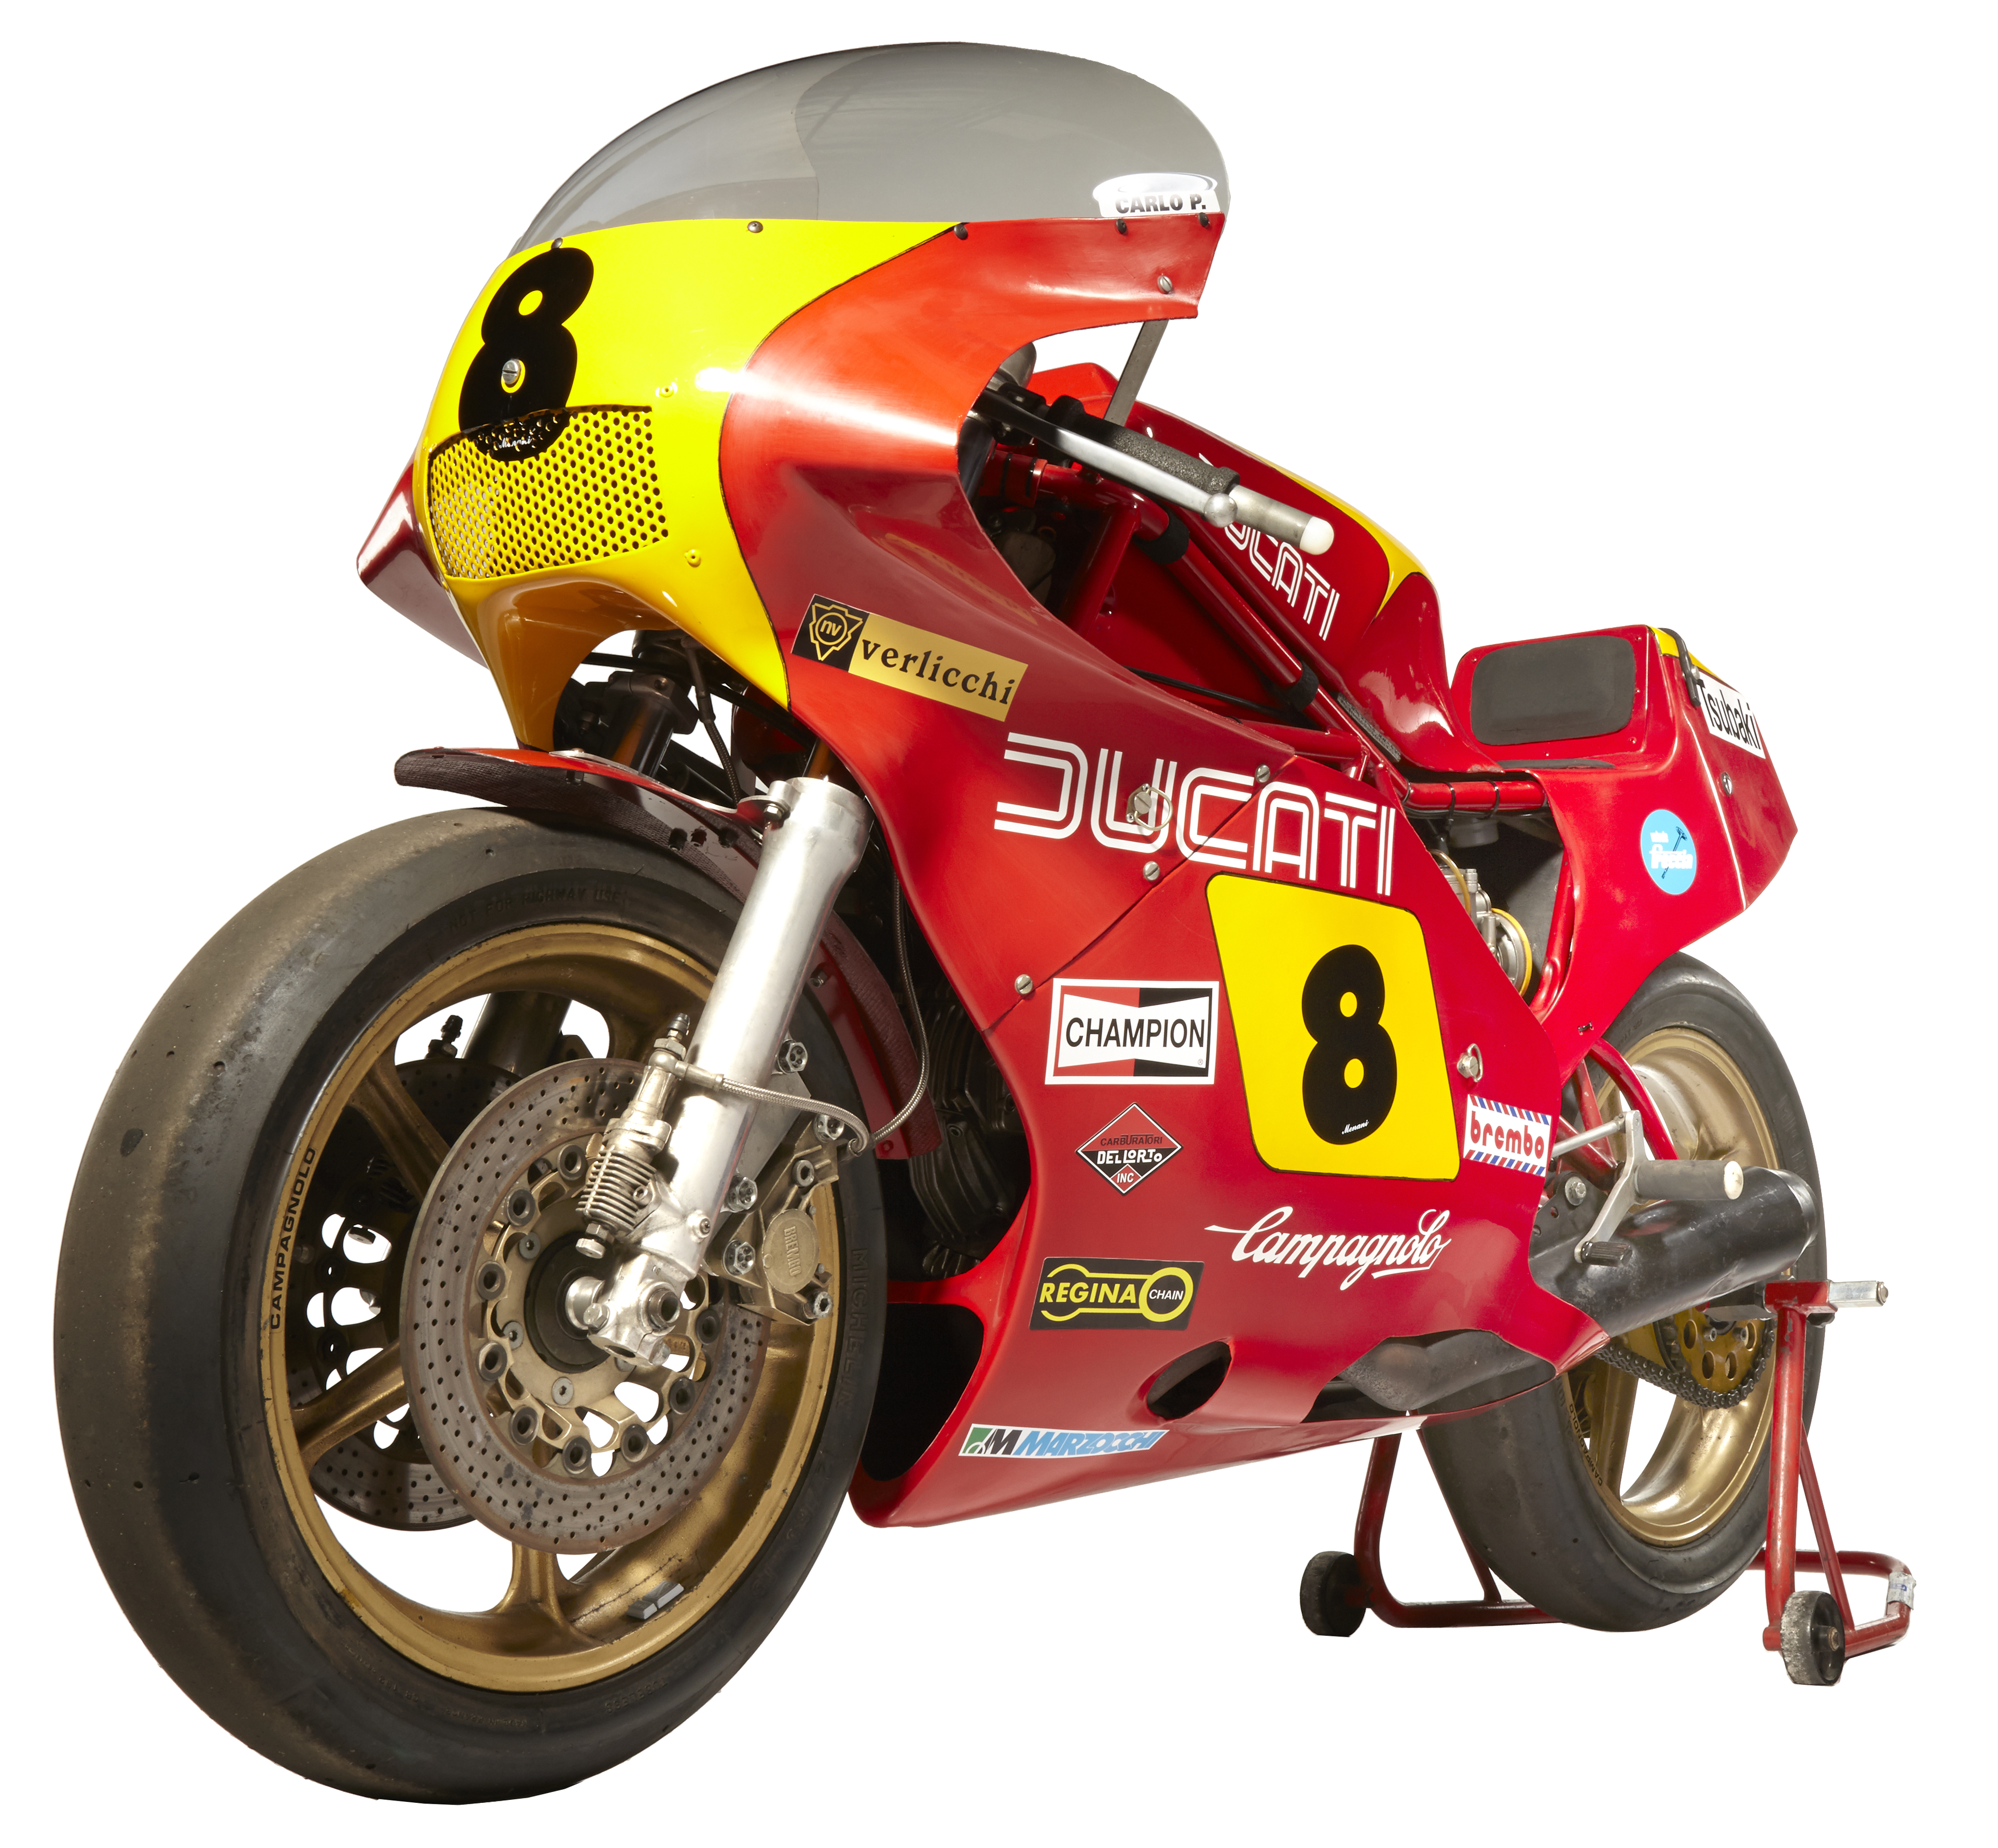 Ultra-rare Ducati collection up for auction | Visordown